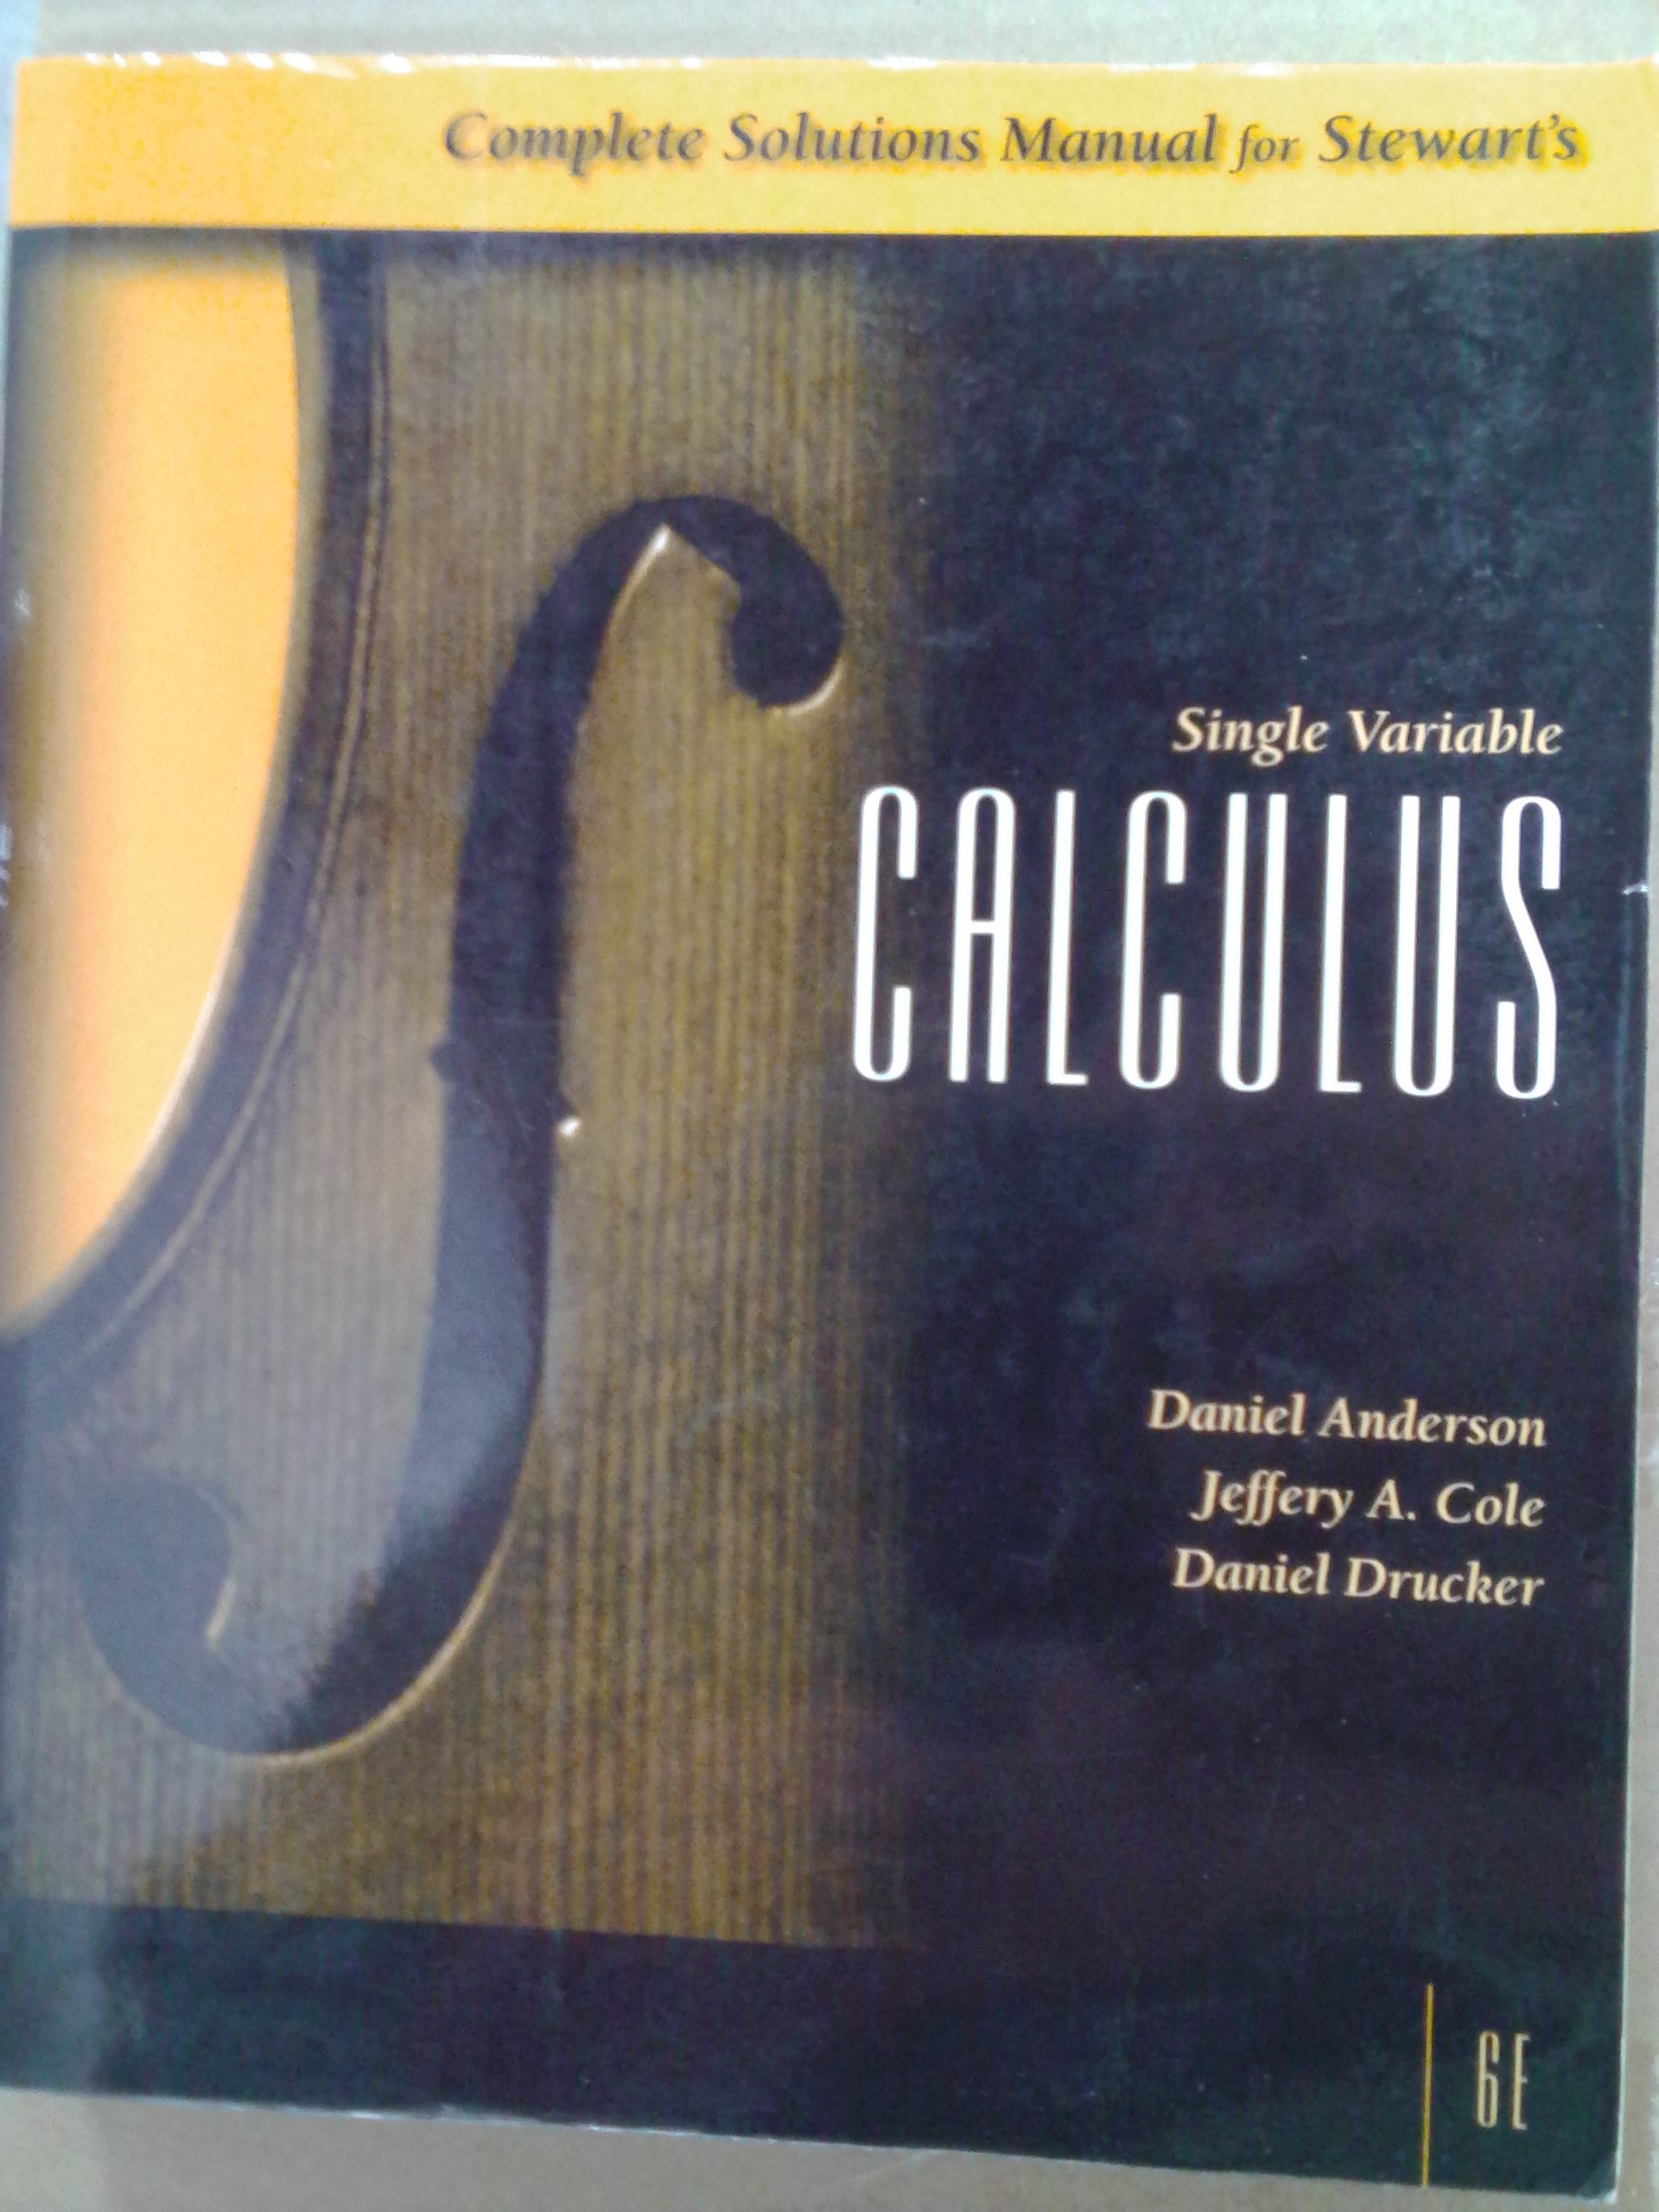 Calculus early transcendentals 7th edition solutions manual.